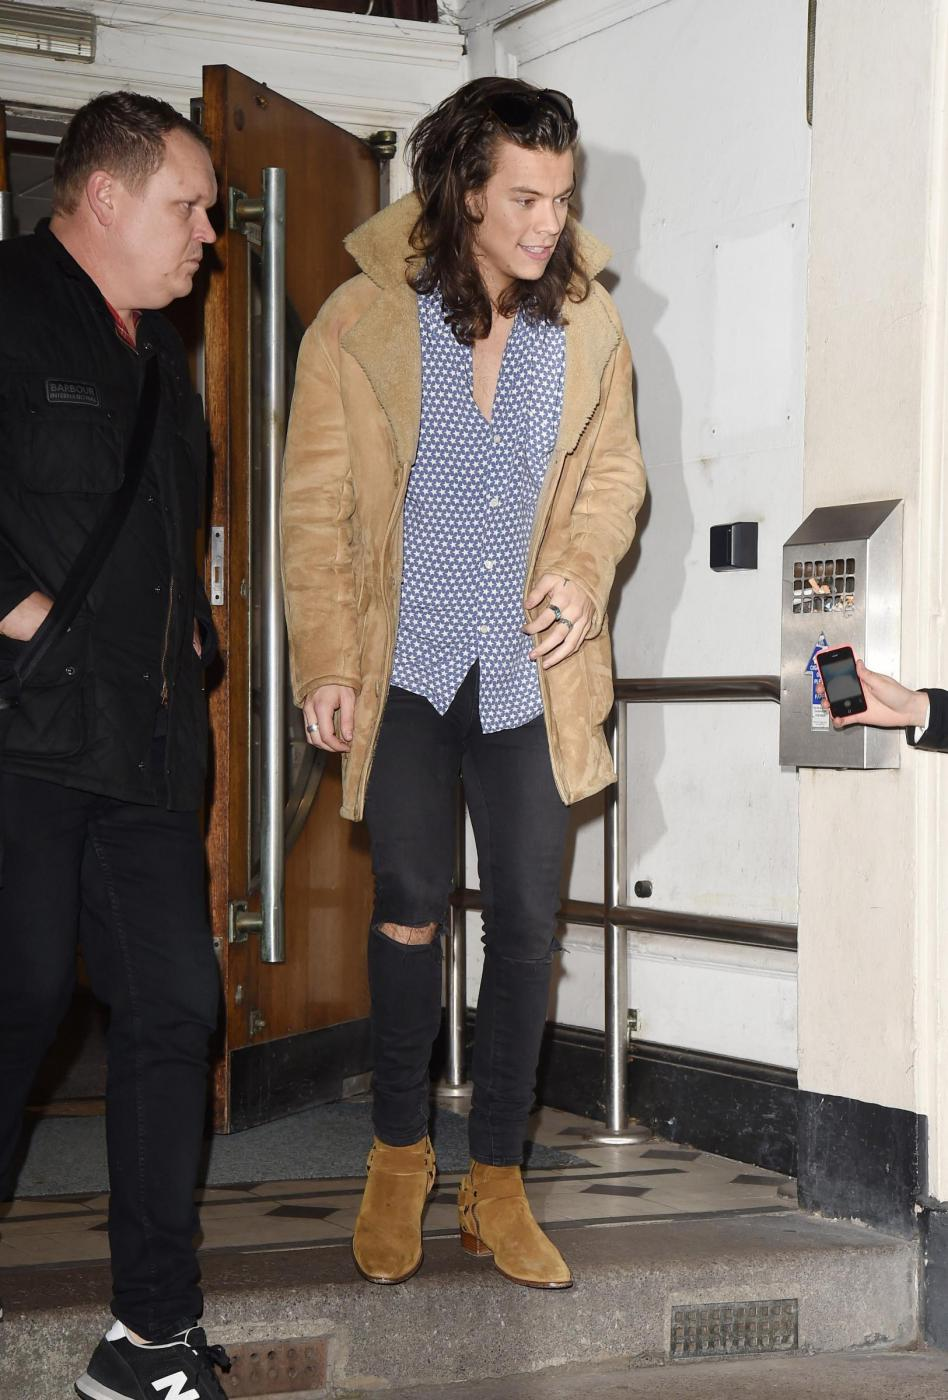 Harry Styles chic: cappotto in renna a camperos a Londra FOTO 4